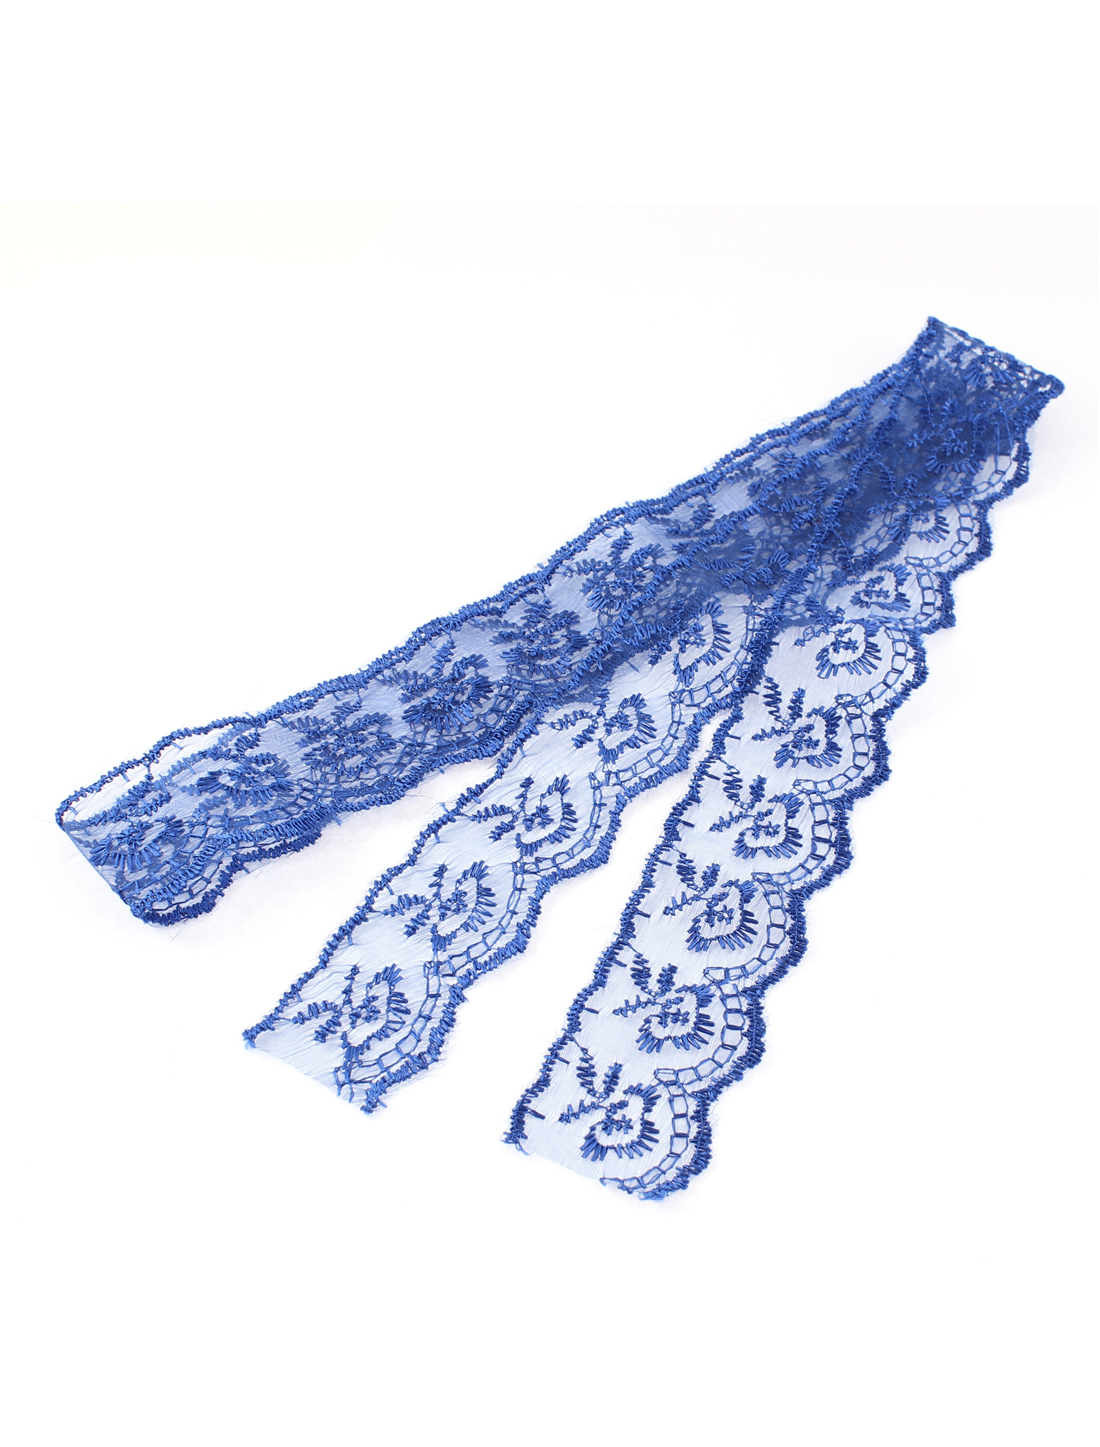 Bridal Dress Headwear Veil Lace Trim Ribbon Blue 4cm Width 1M 3.3Ft Long